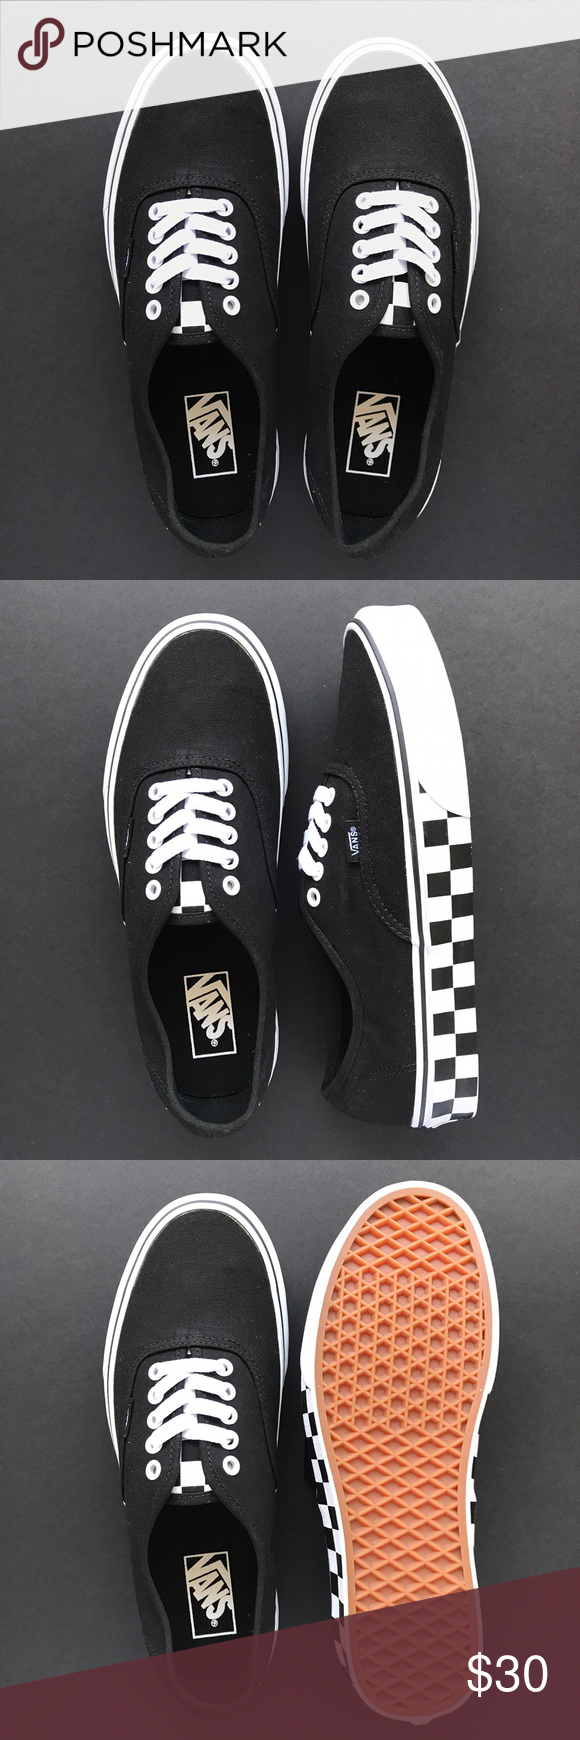 e2e60dd0f9 Vans Authentic Black Canvas Checkerboard Sole Black canvas Vans Authentic  with checkerboard print on side of soles. Very cool! Box not included. US  Size  ...